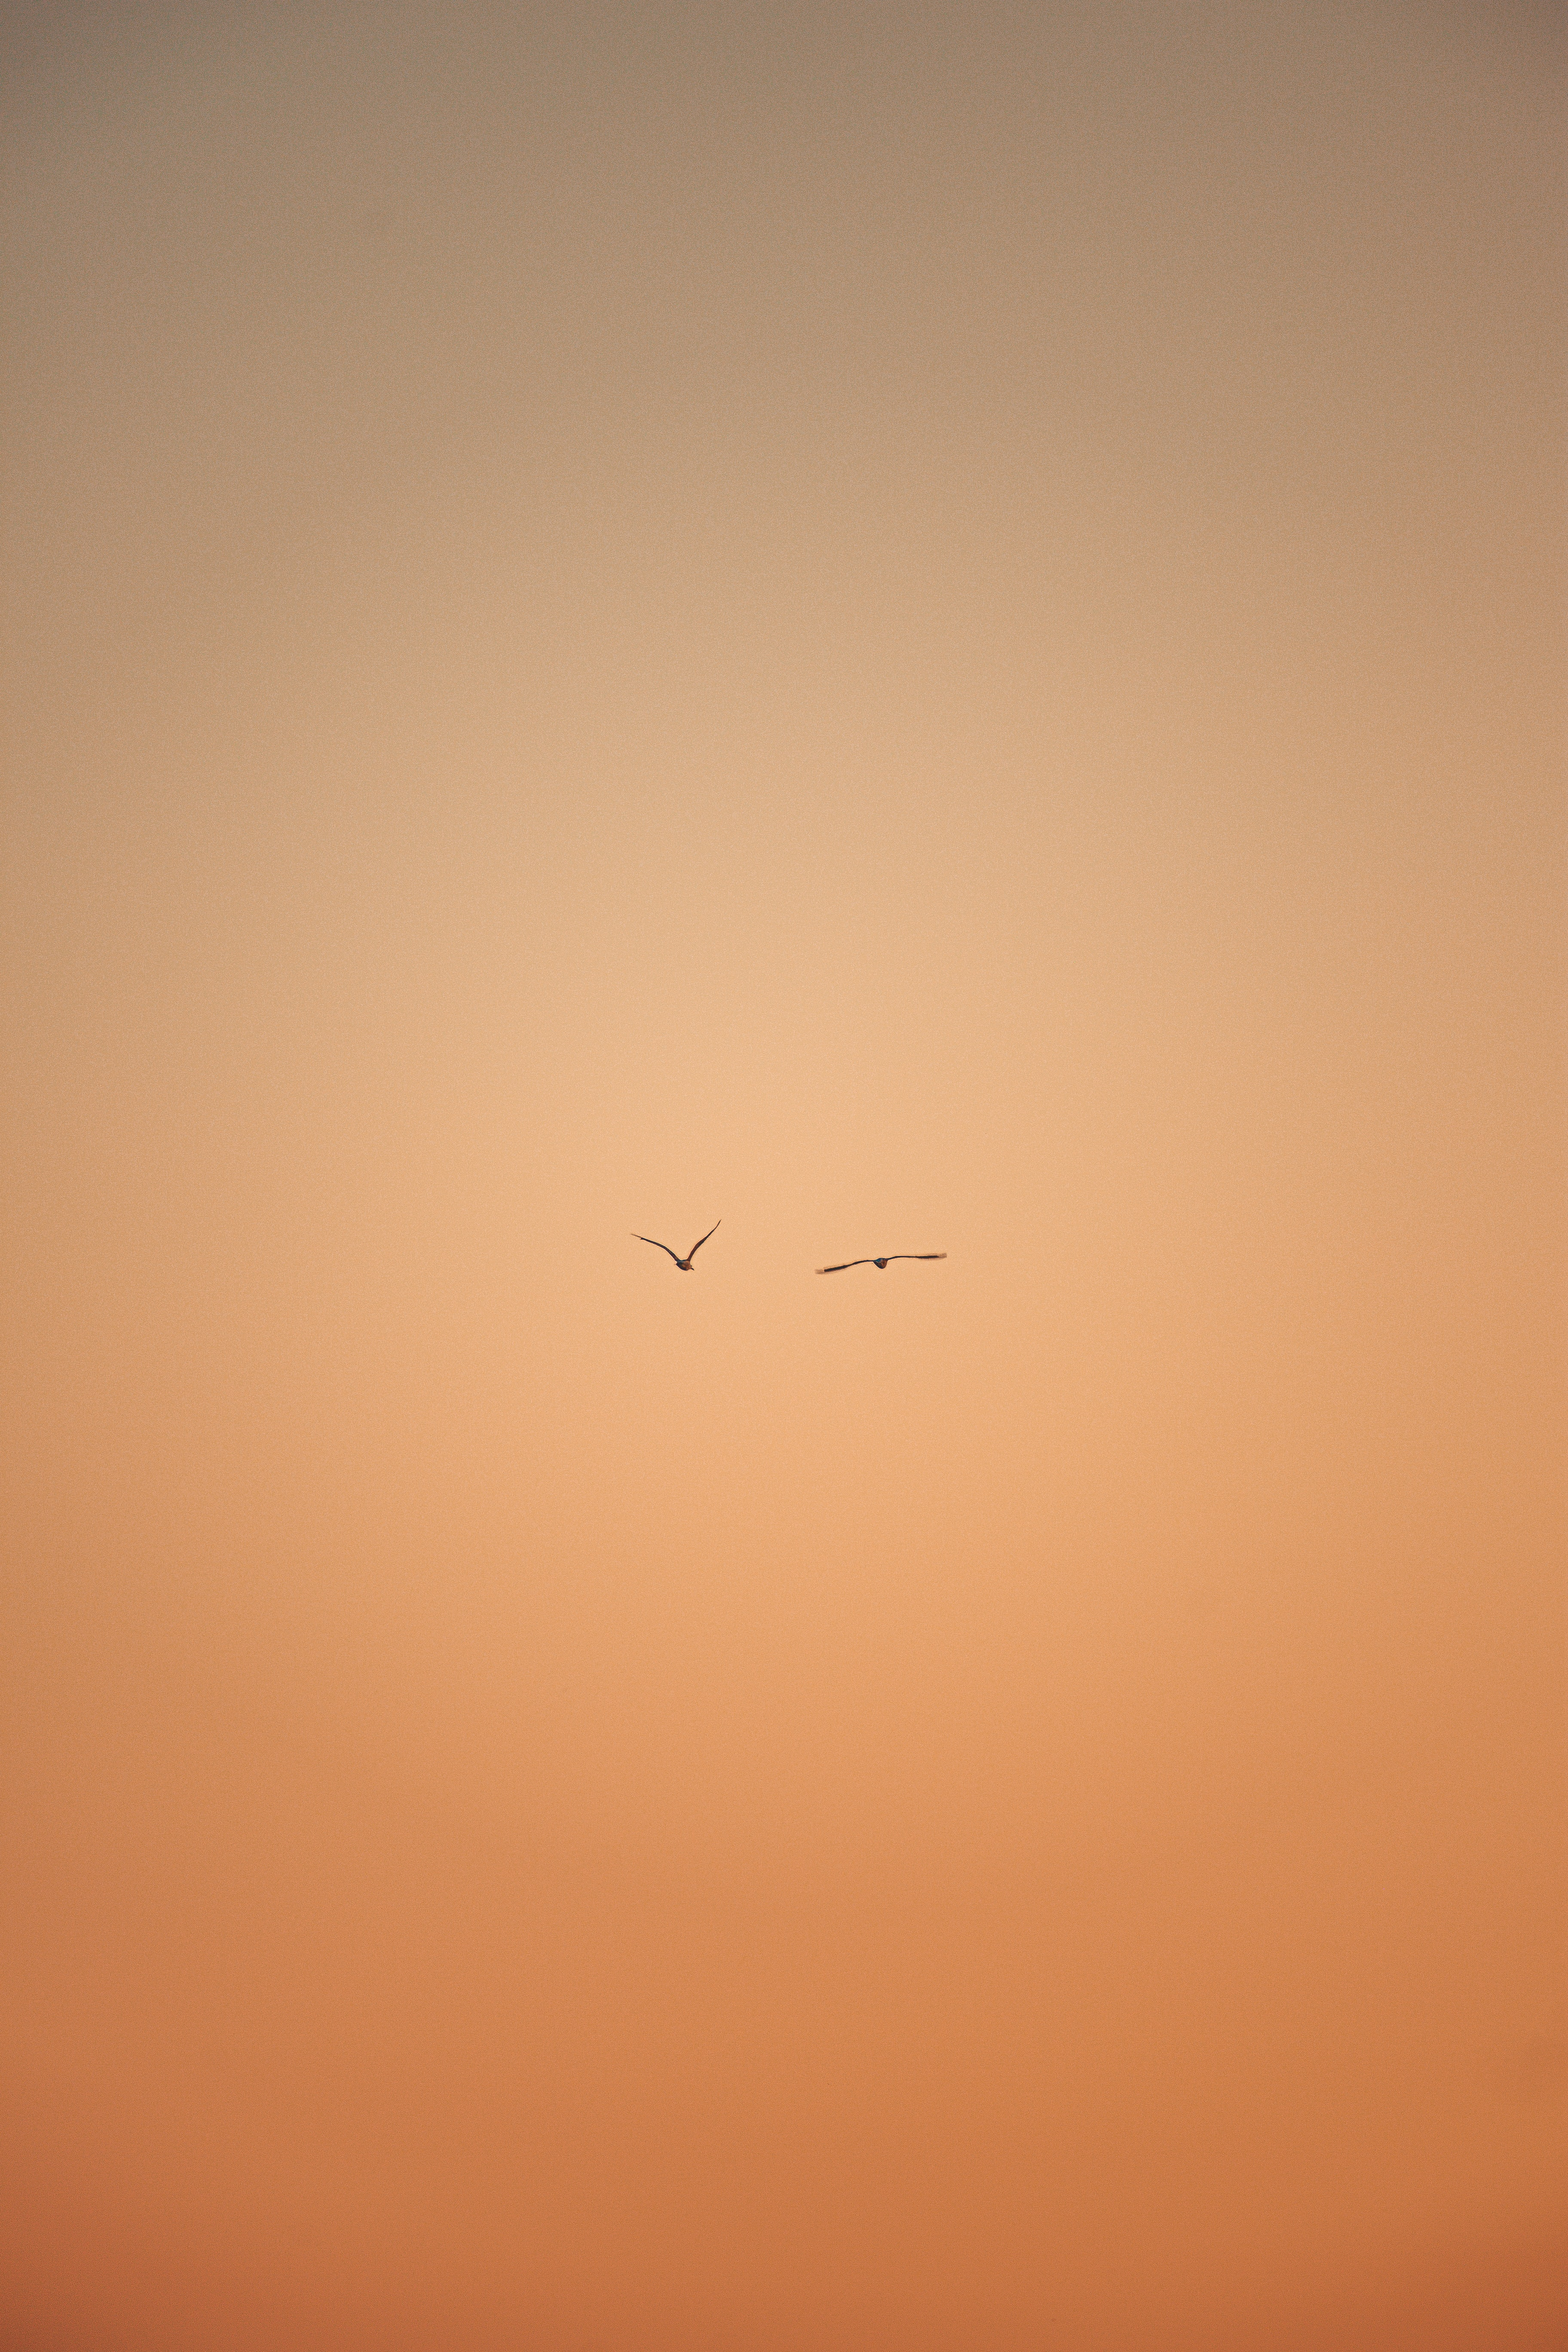 134702 download wallpaper Minimalism, Flight, Sky, Birds screensavers and pictures for free